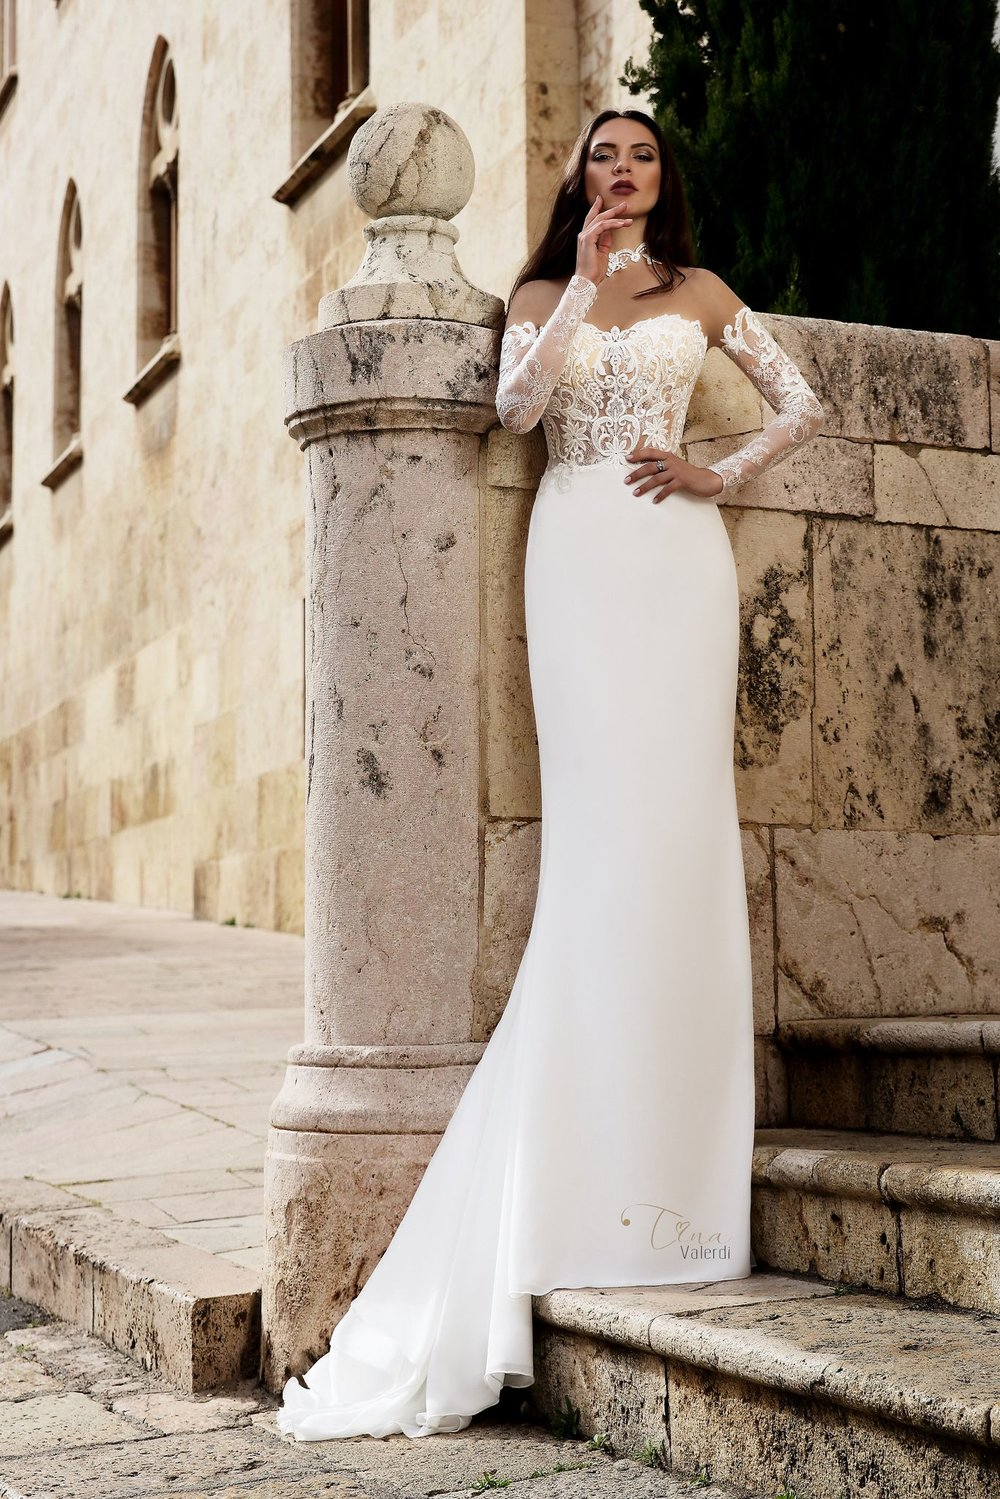 VIRGINIA Wedding Dress By TINA VALERDI